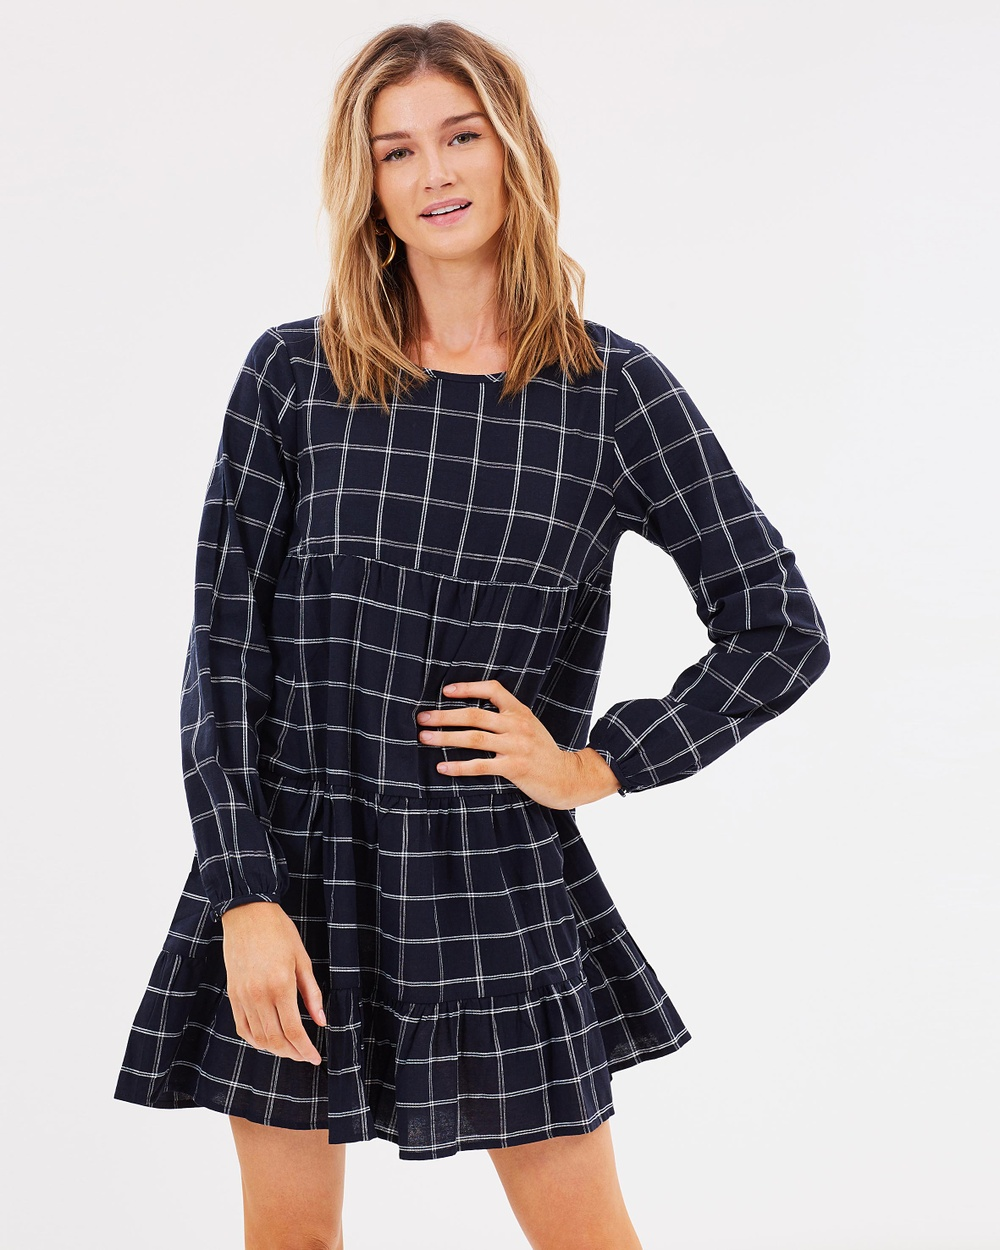 Atmos & Here ICONIC EXCLUSIVE Iris Smock Dress Printed Dresses Navy Check ICONIC EXCLUSIVE Iris Smock Dress